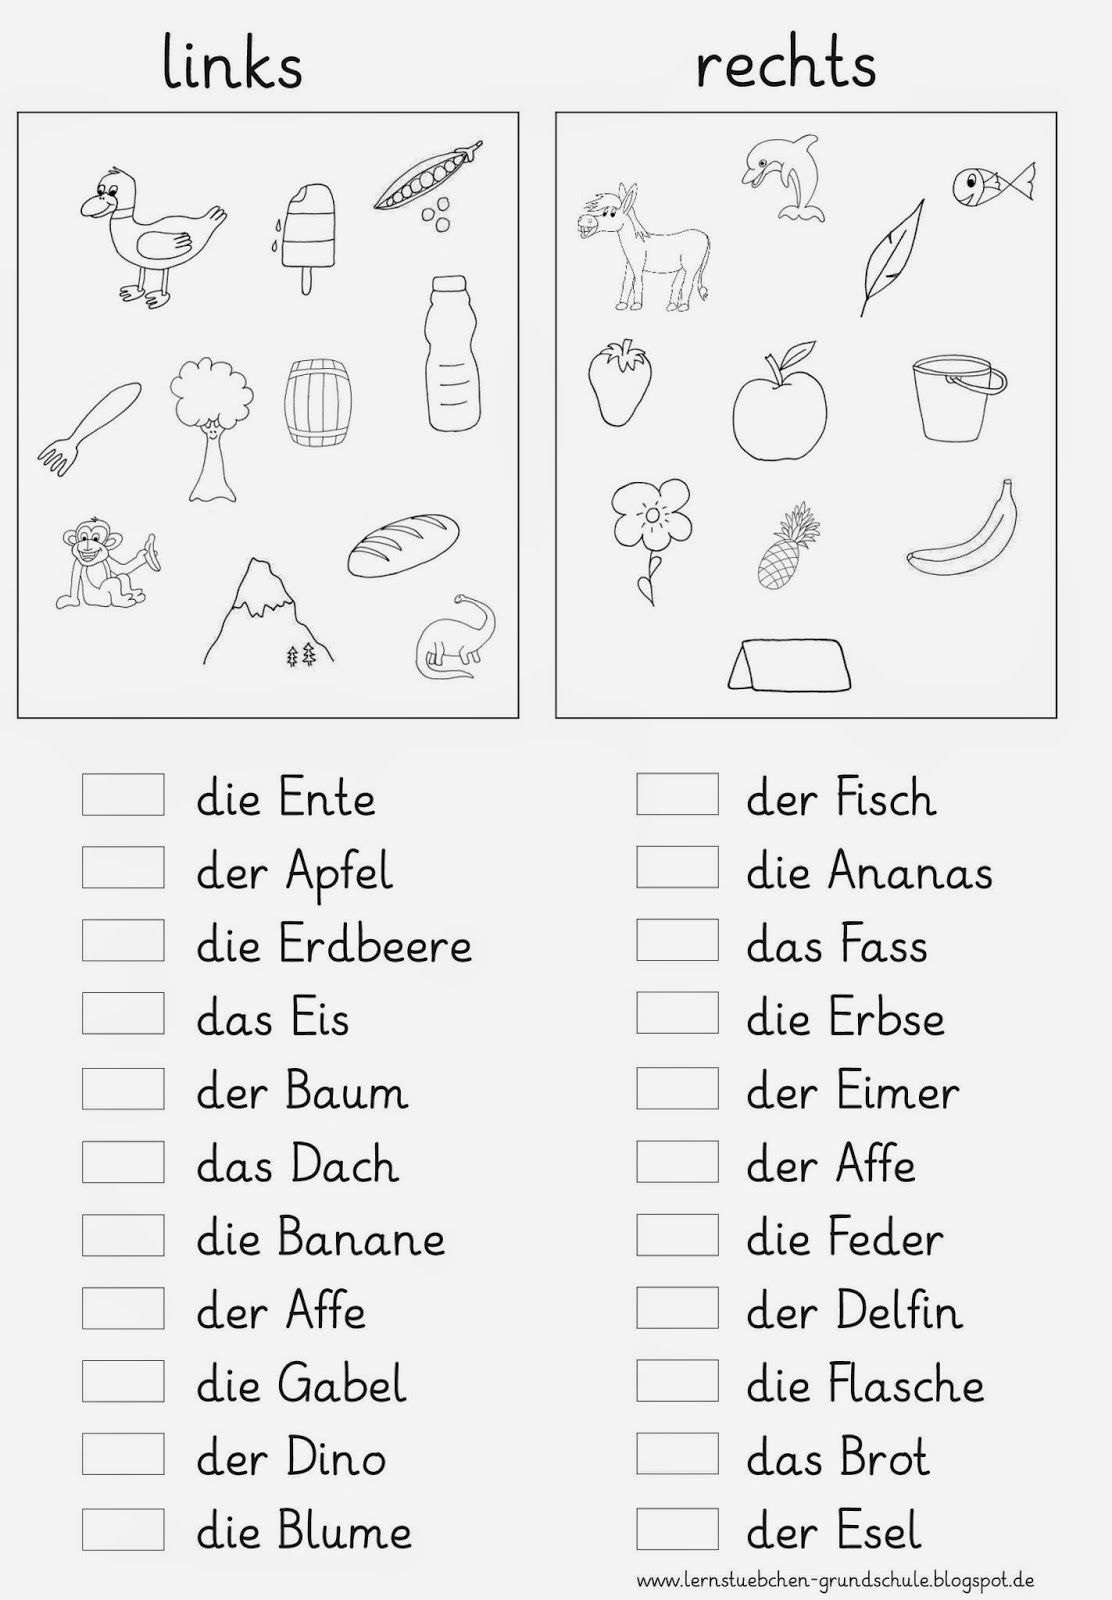 lesef rderung 1 klasse german grammar learn german und pre school. Black Bedroom Furniture Sets. Home Design Ideas